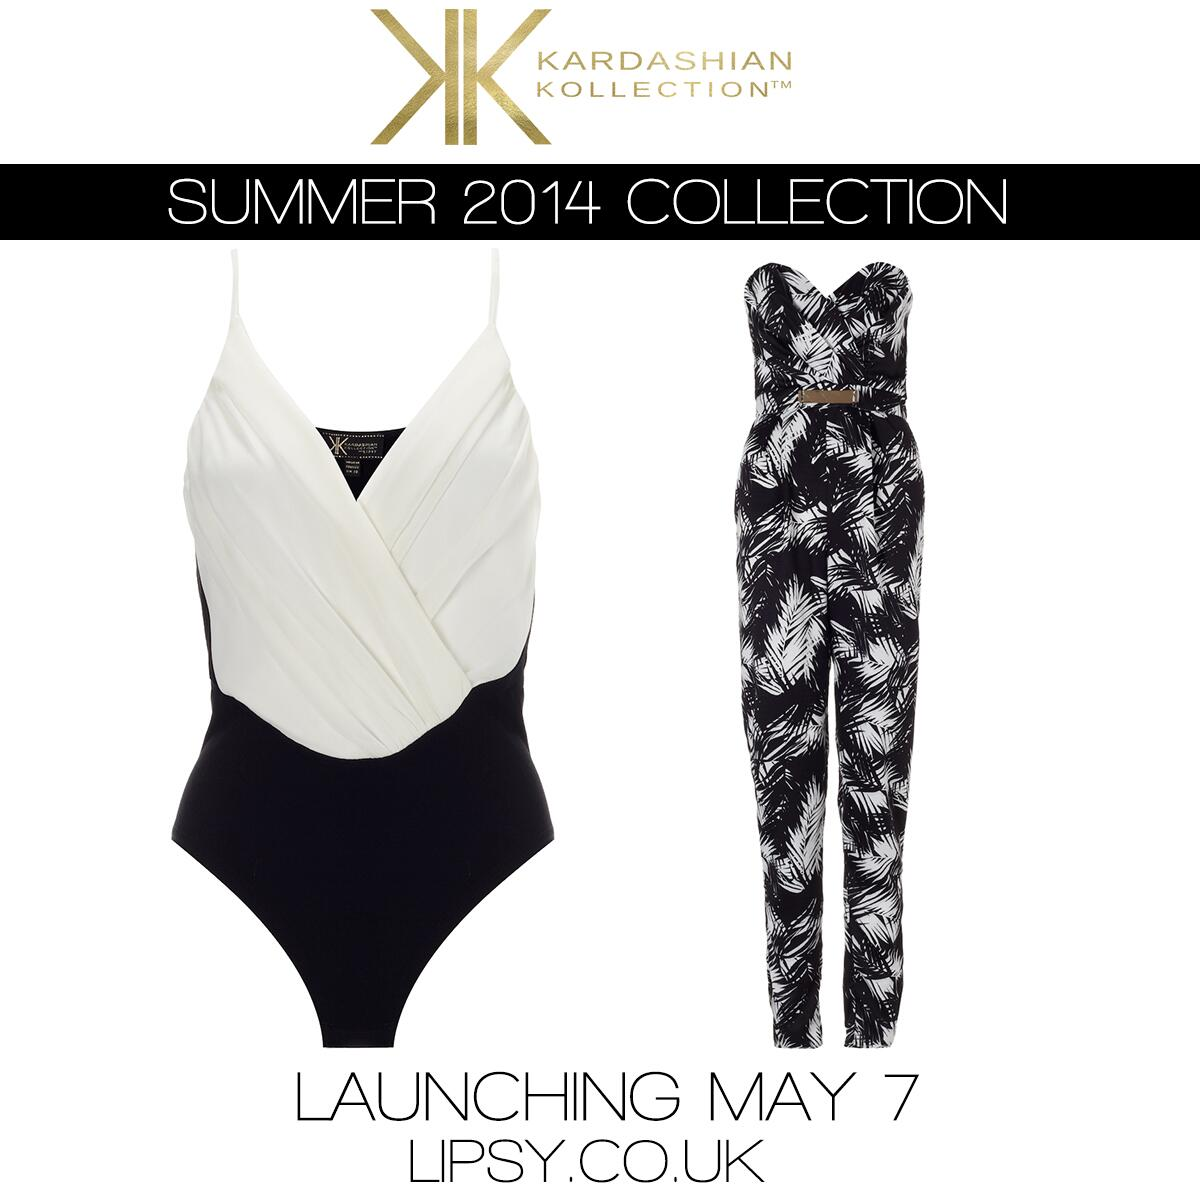 Big news for our UK ladies! Our summer @thek_kollection is launching at @LipsyLondon May 7! 17 new pieces & 24 bags! http://t.co/DUD82I3SN9